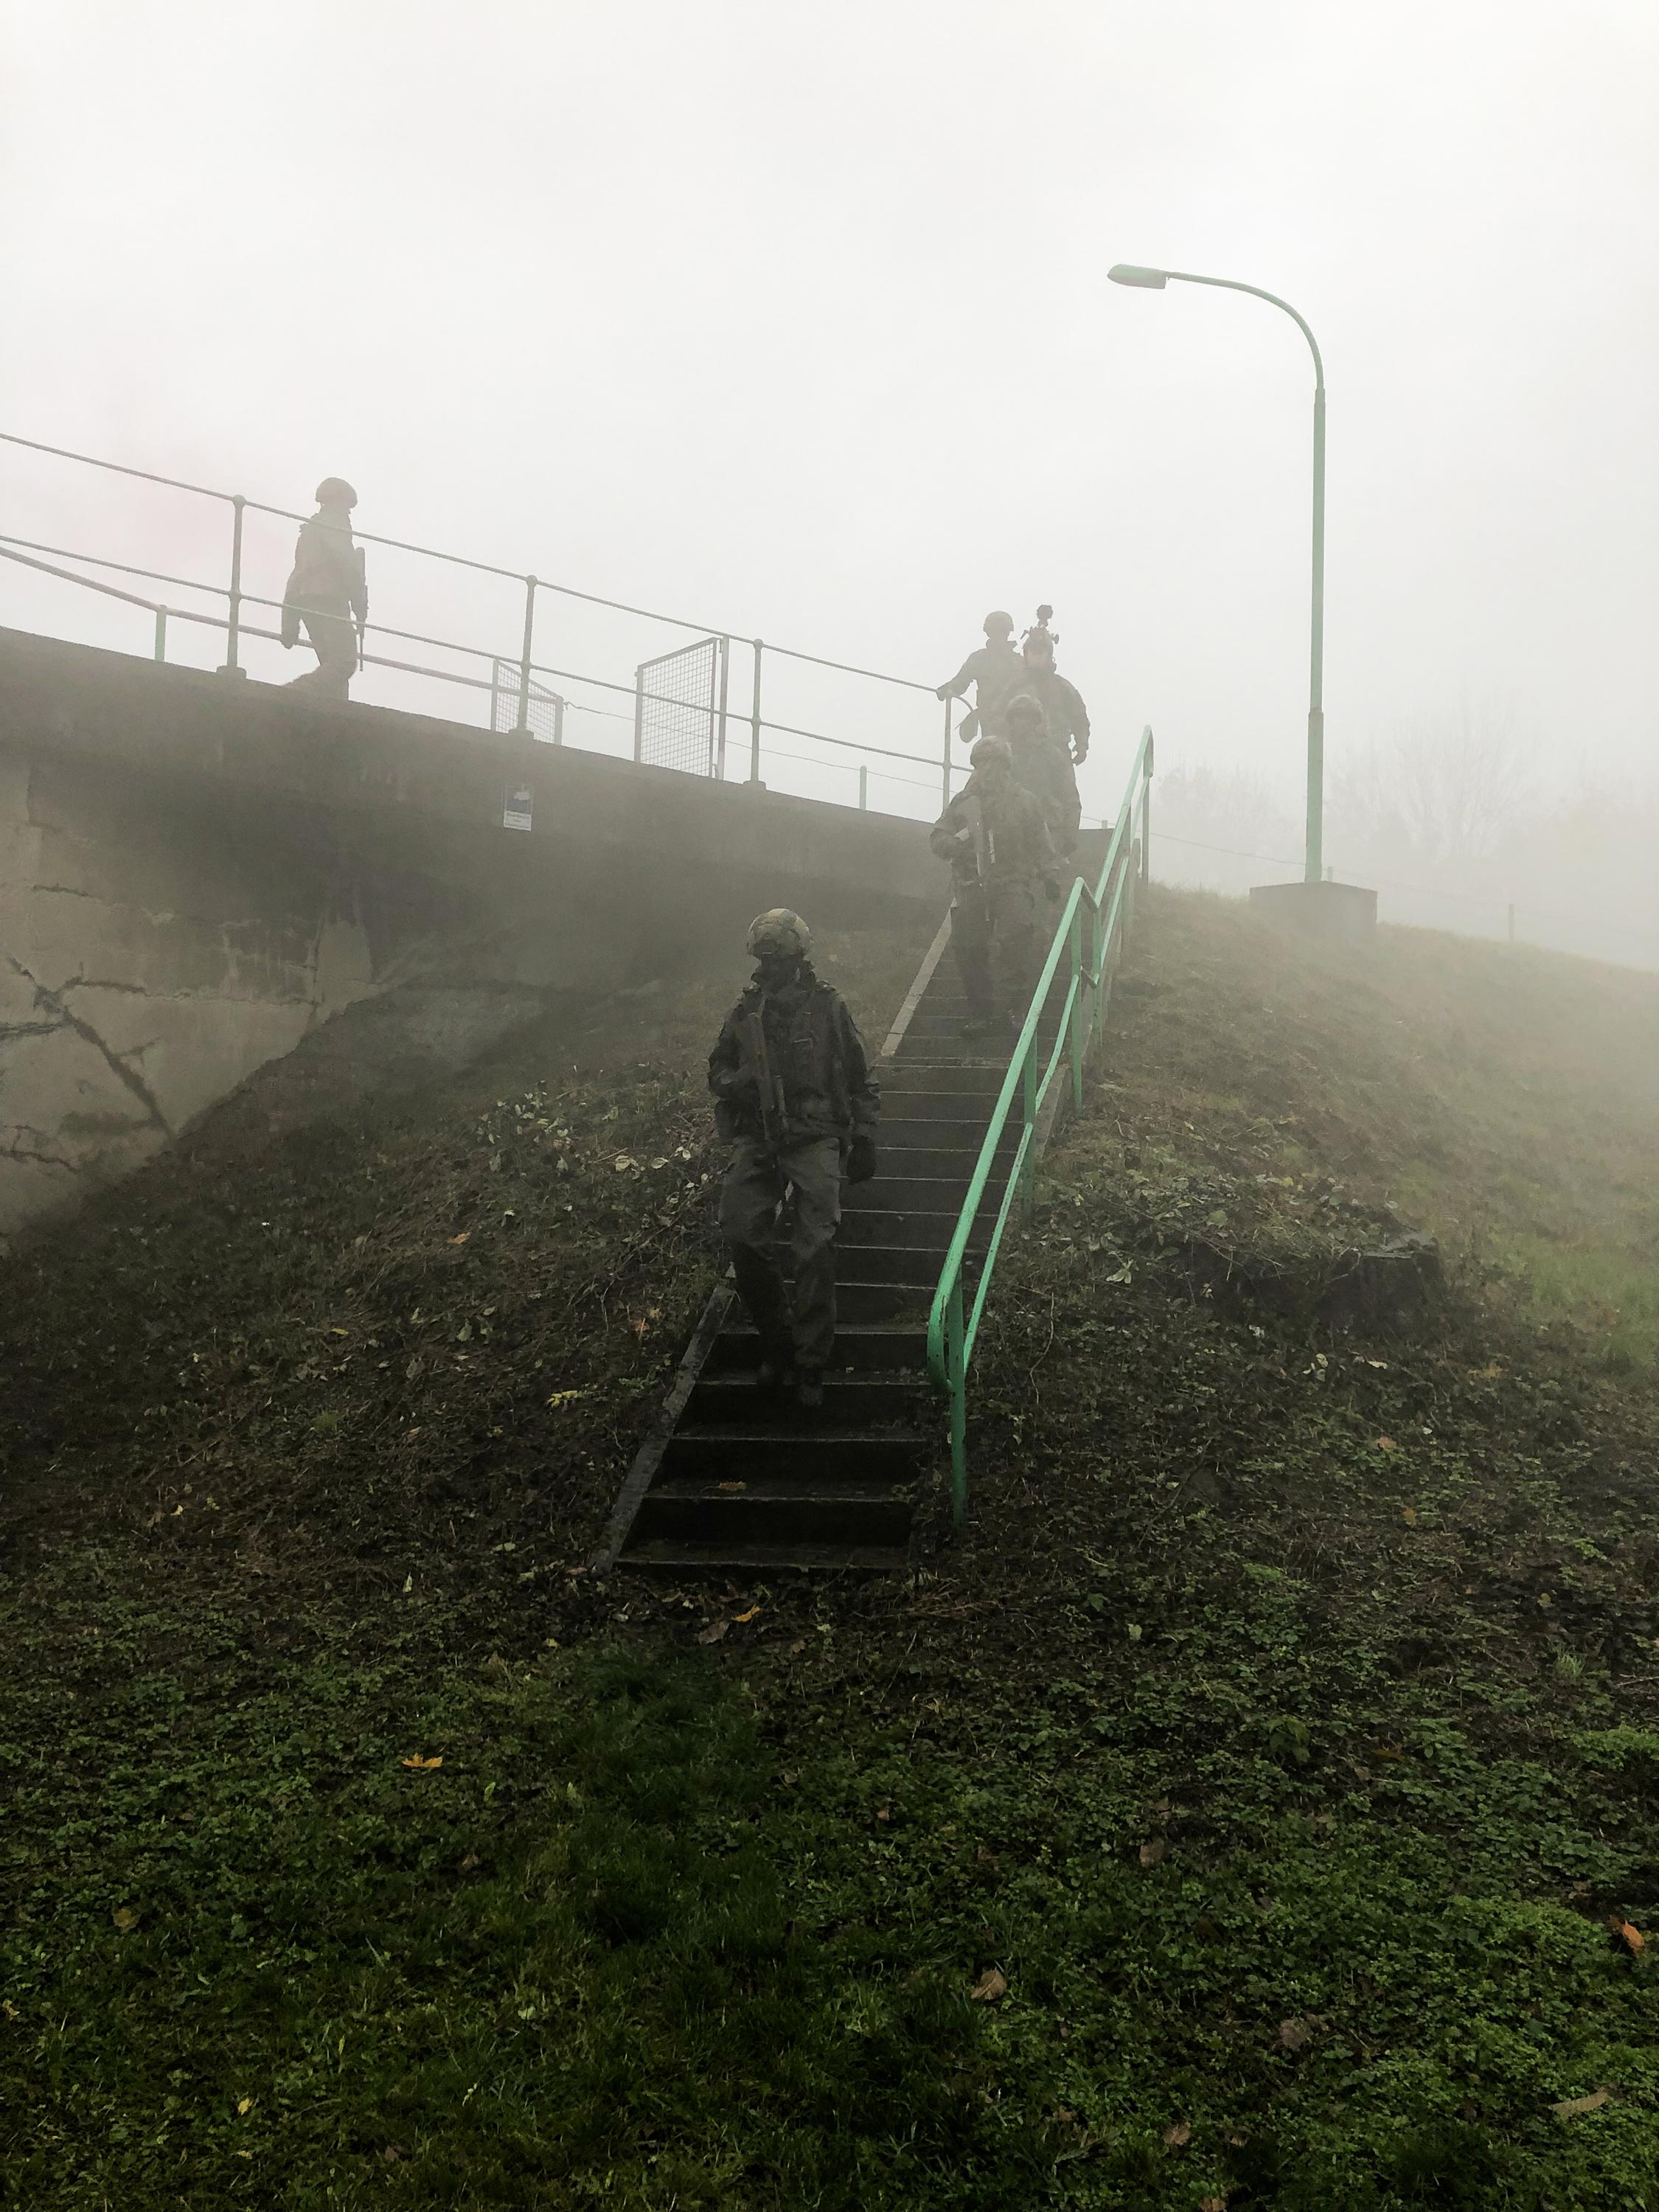 Foggy scene with soldiers running downstairs during a 360 video production